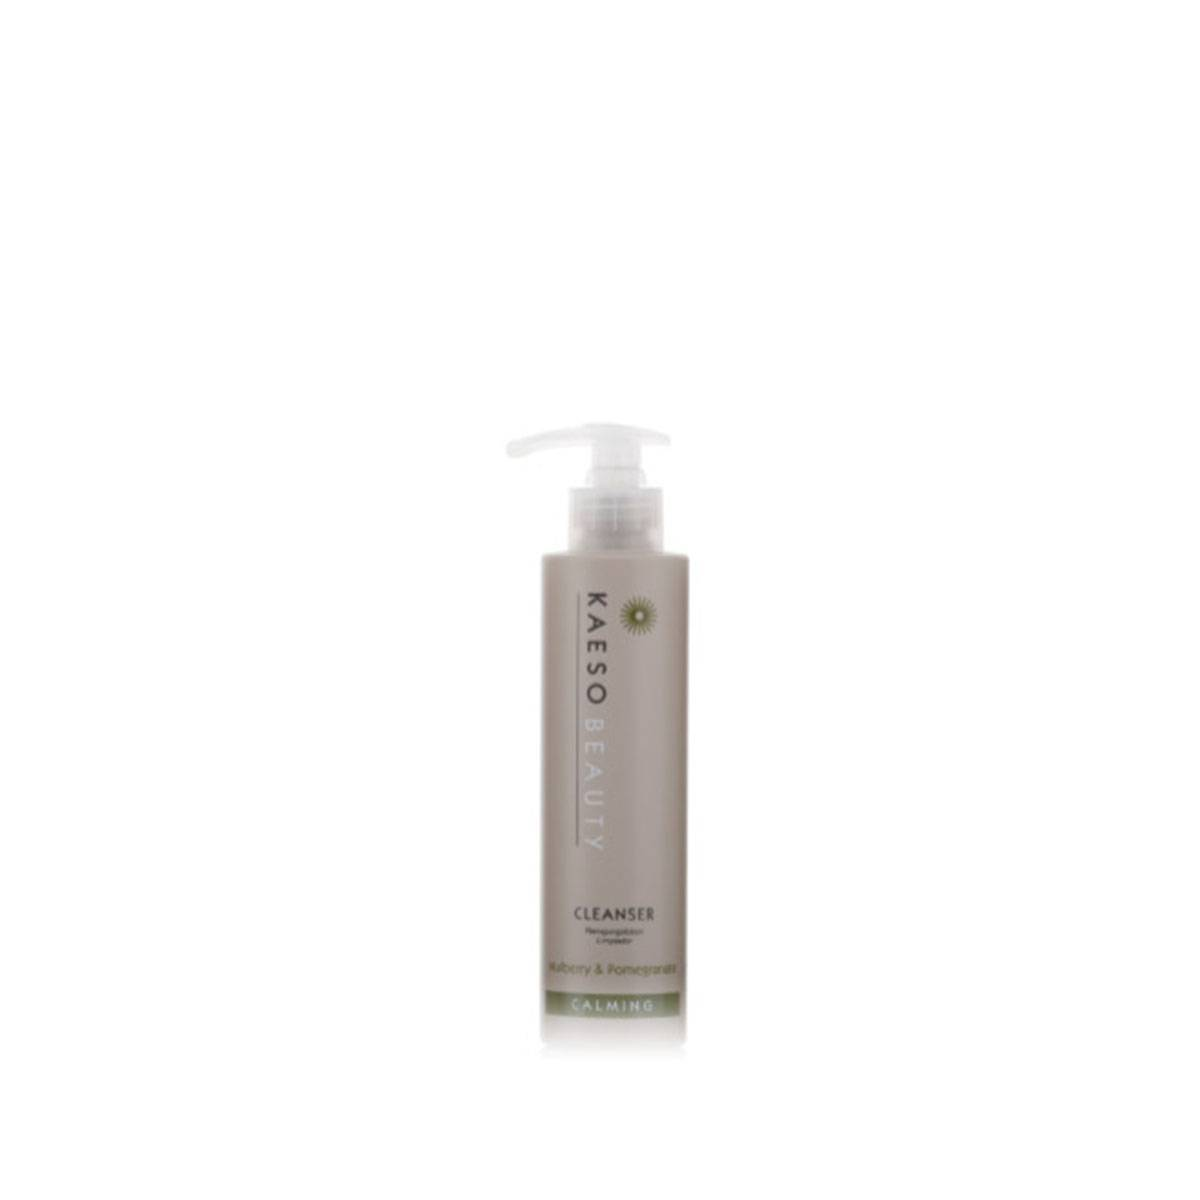 Kaeso Calming Cleanser495ml